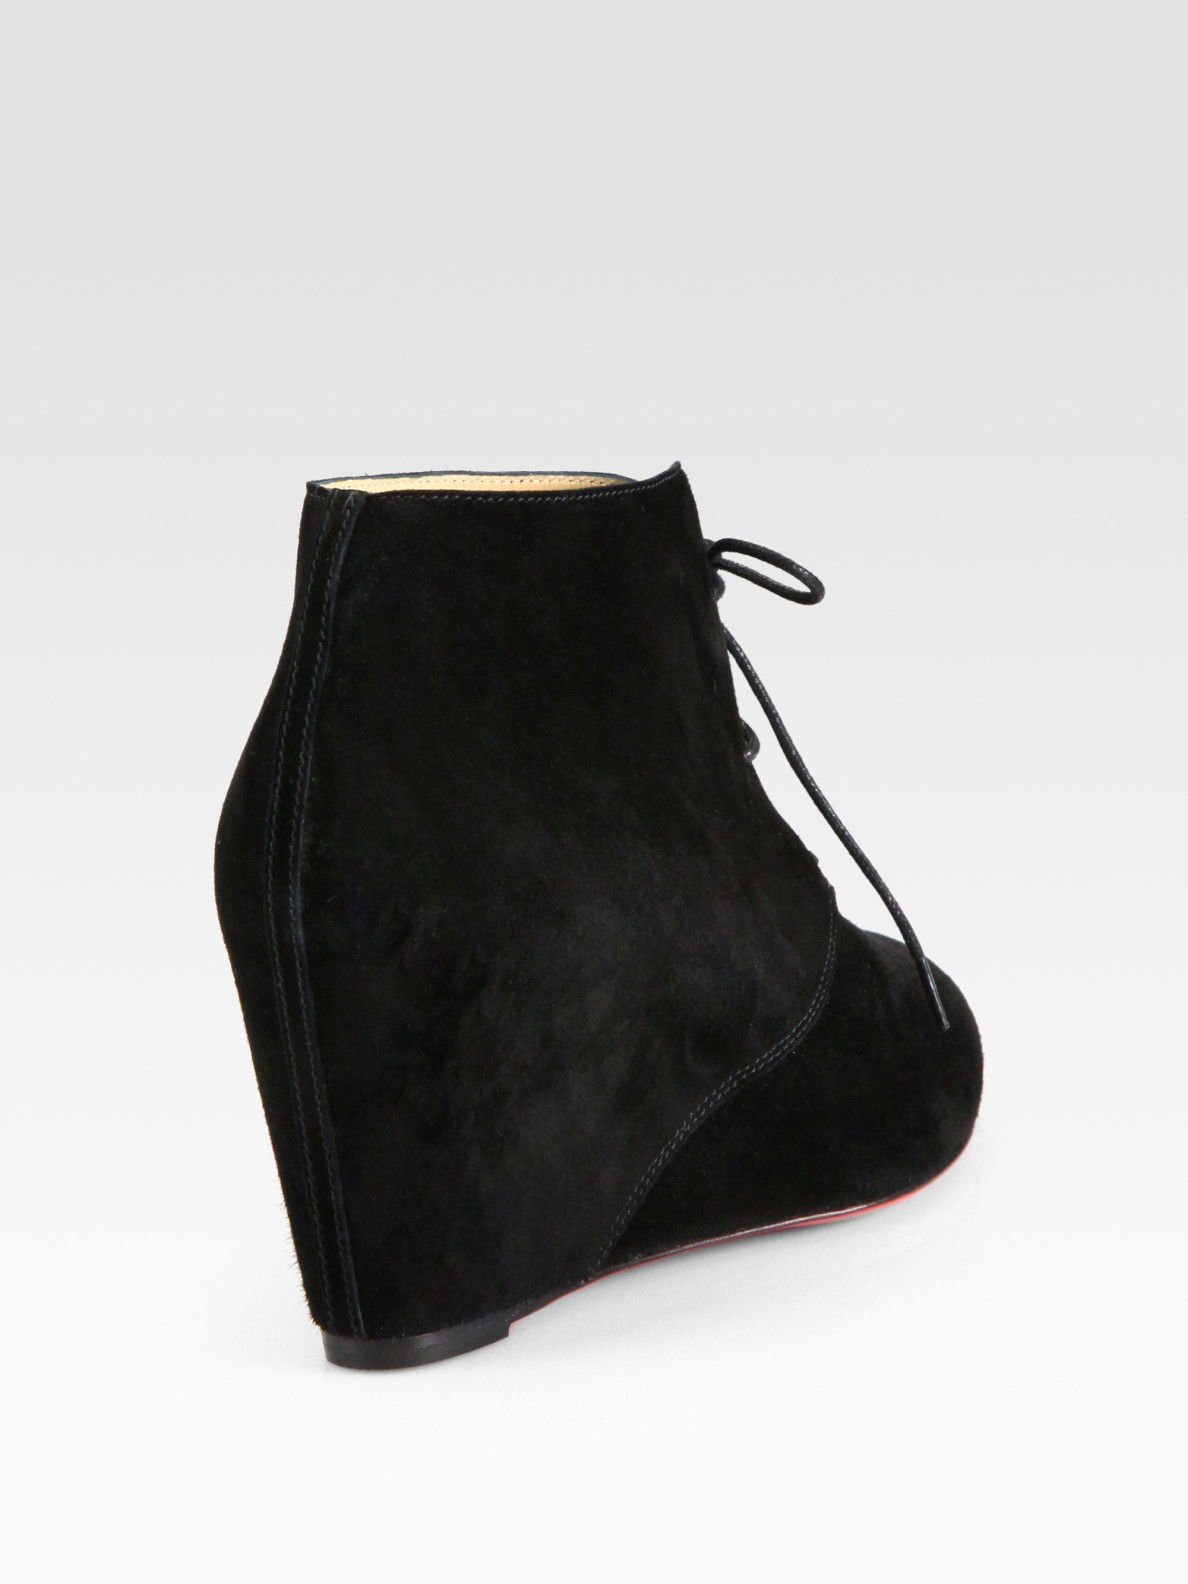 aaa replica shoes - Christian louboutin Laceup Suede Wedge Ankle Boots in Black | Lyst